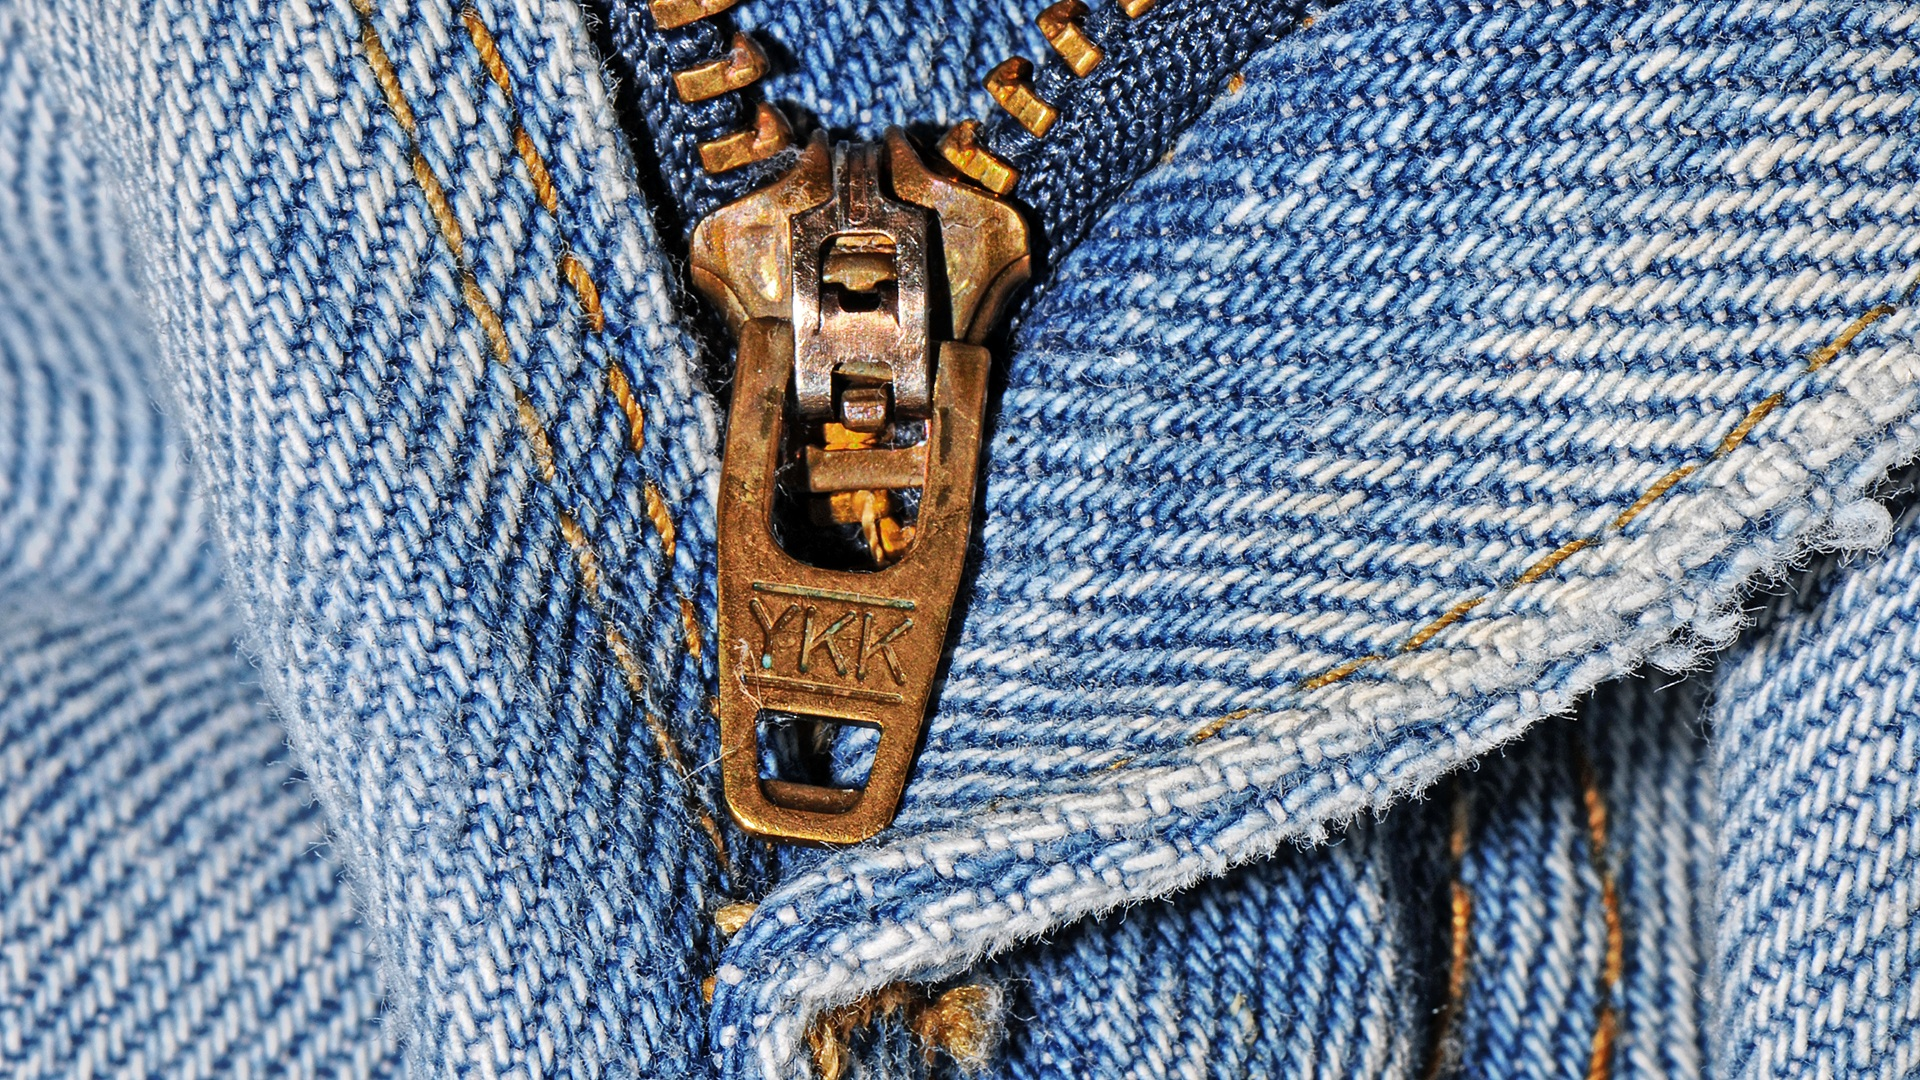 Jeans unzipping